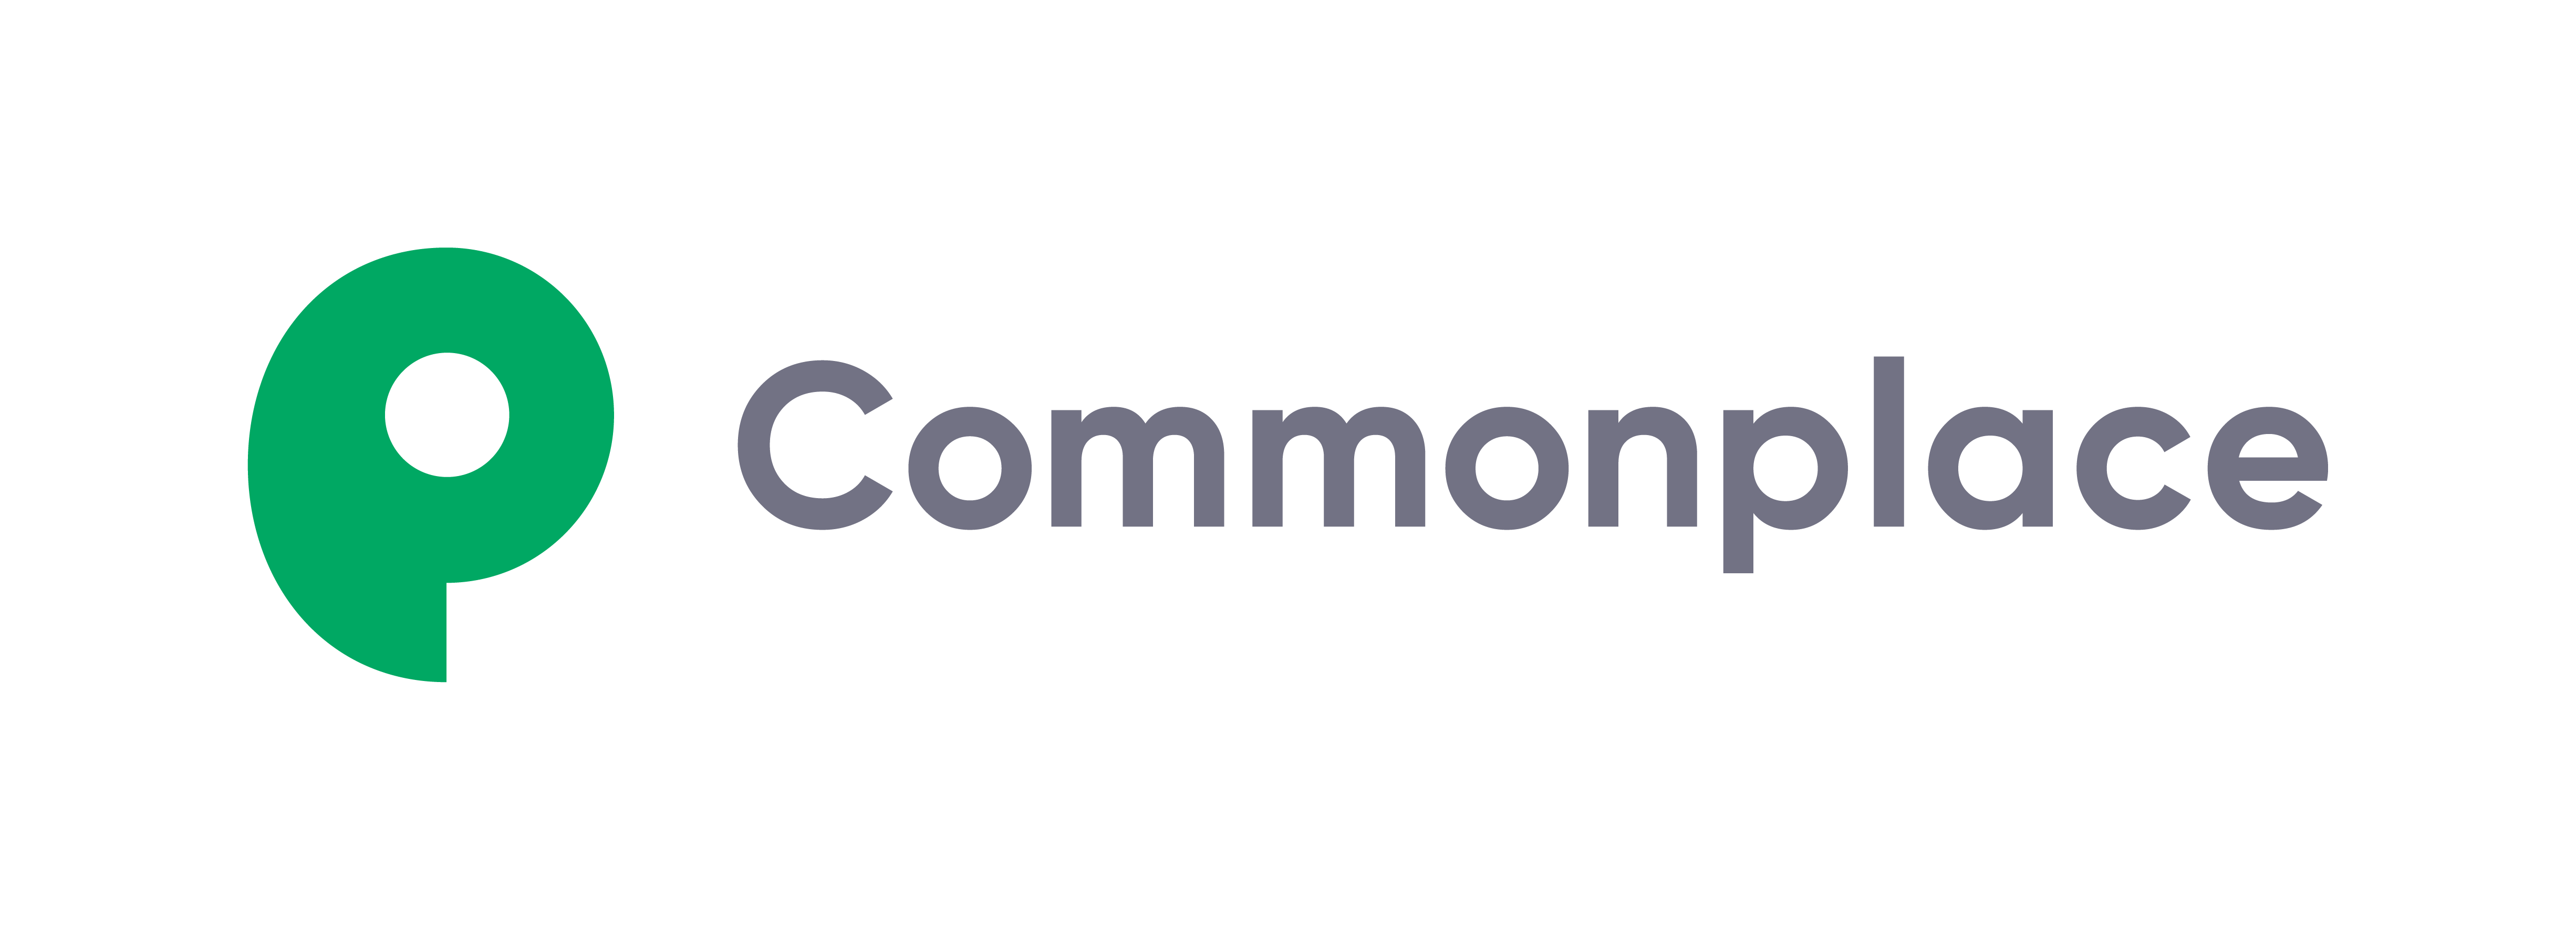 Commonplace Company Logo